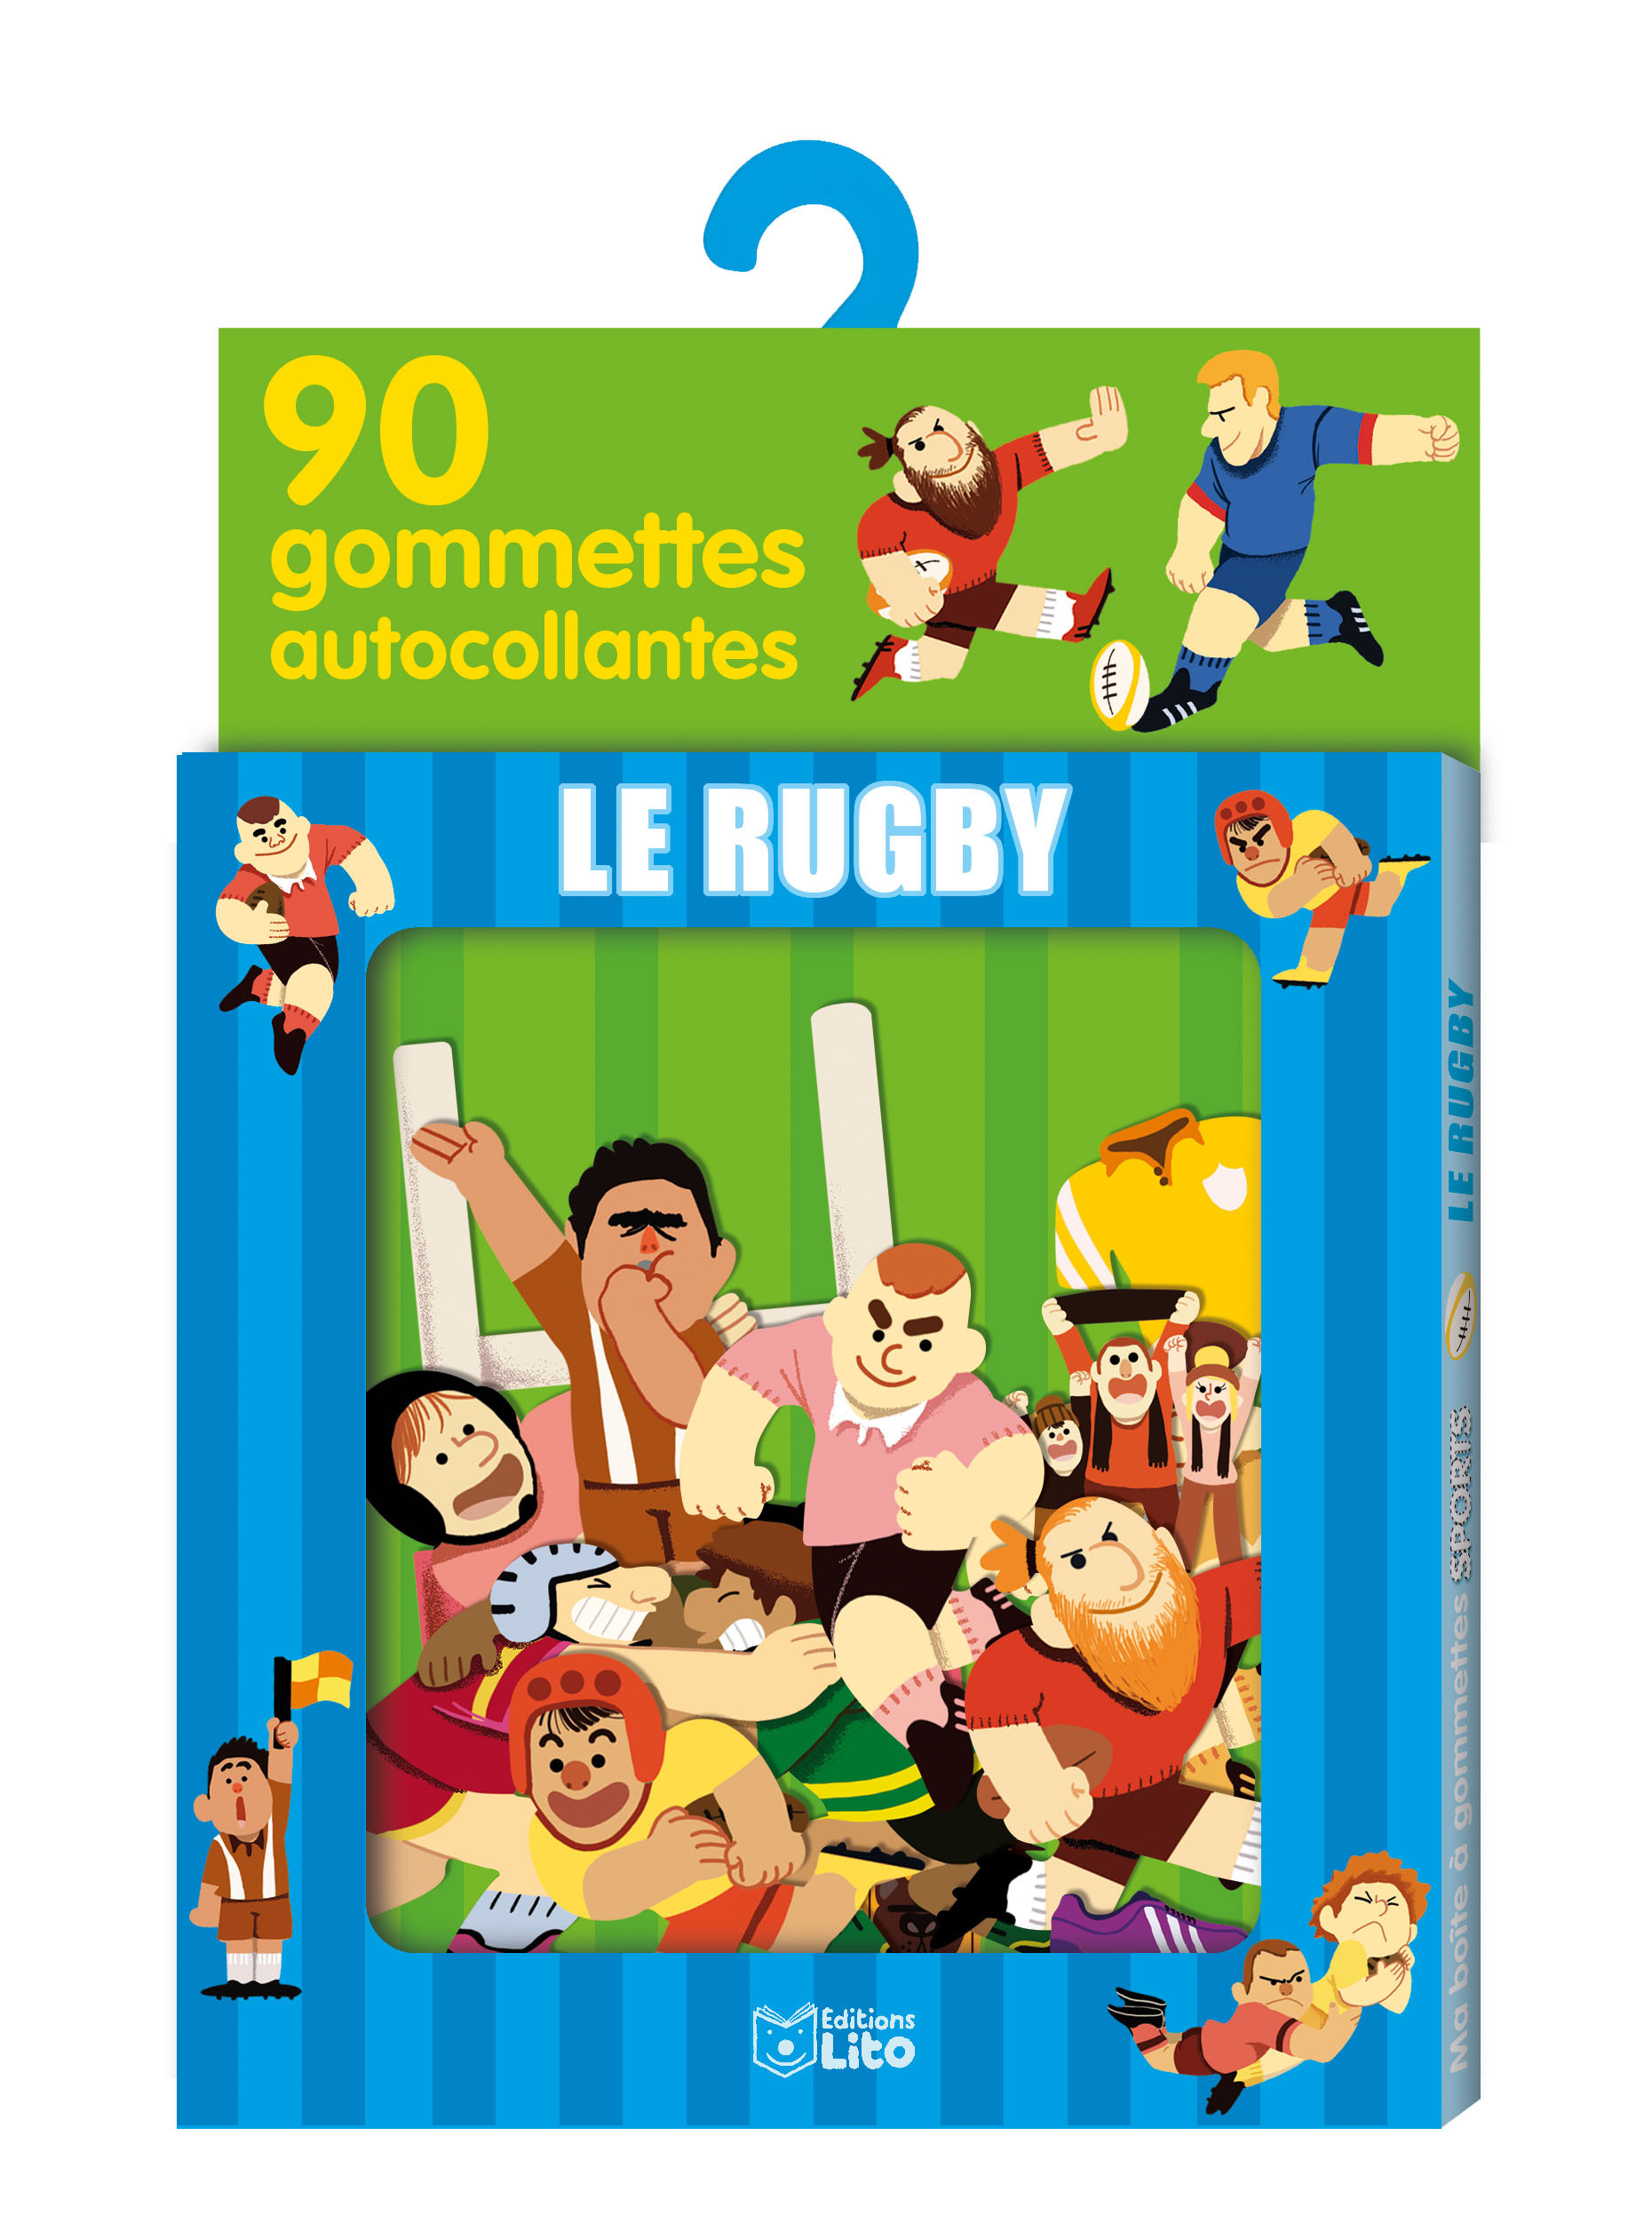 GOMMETTES LE RUGBY